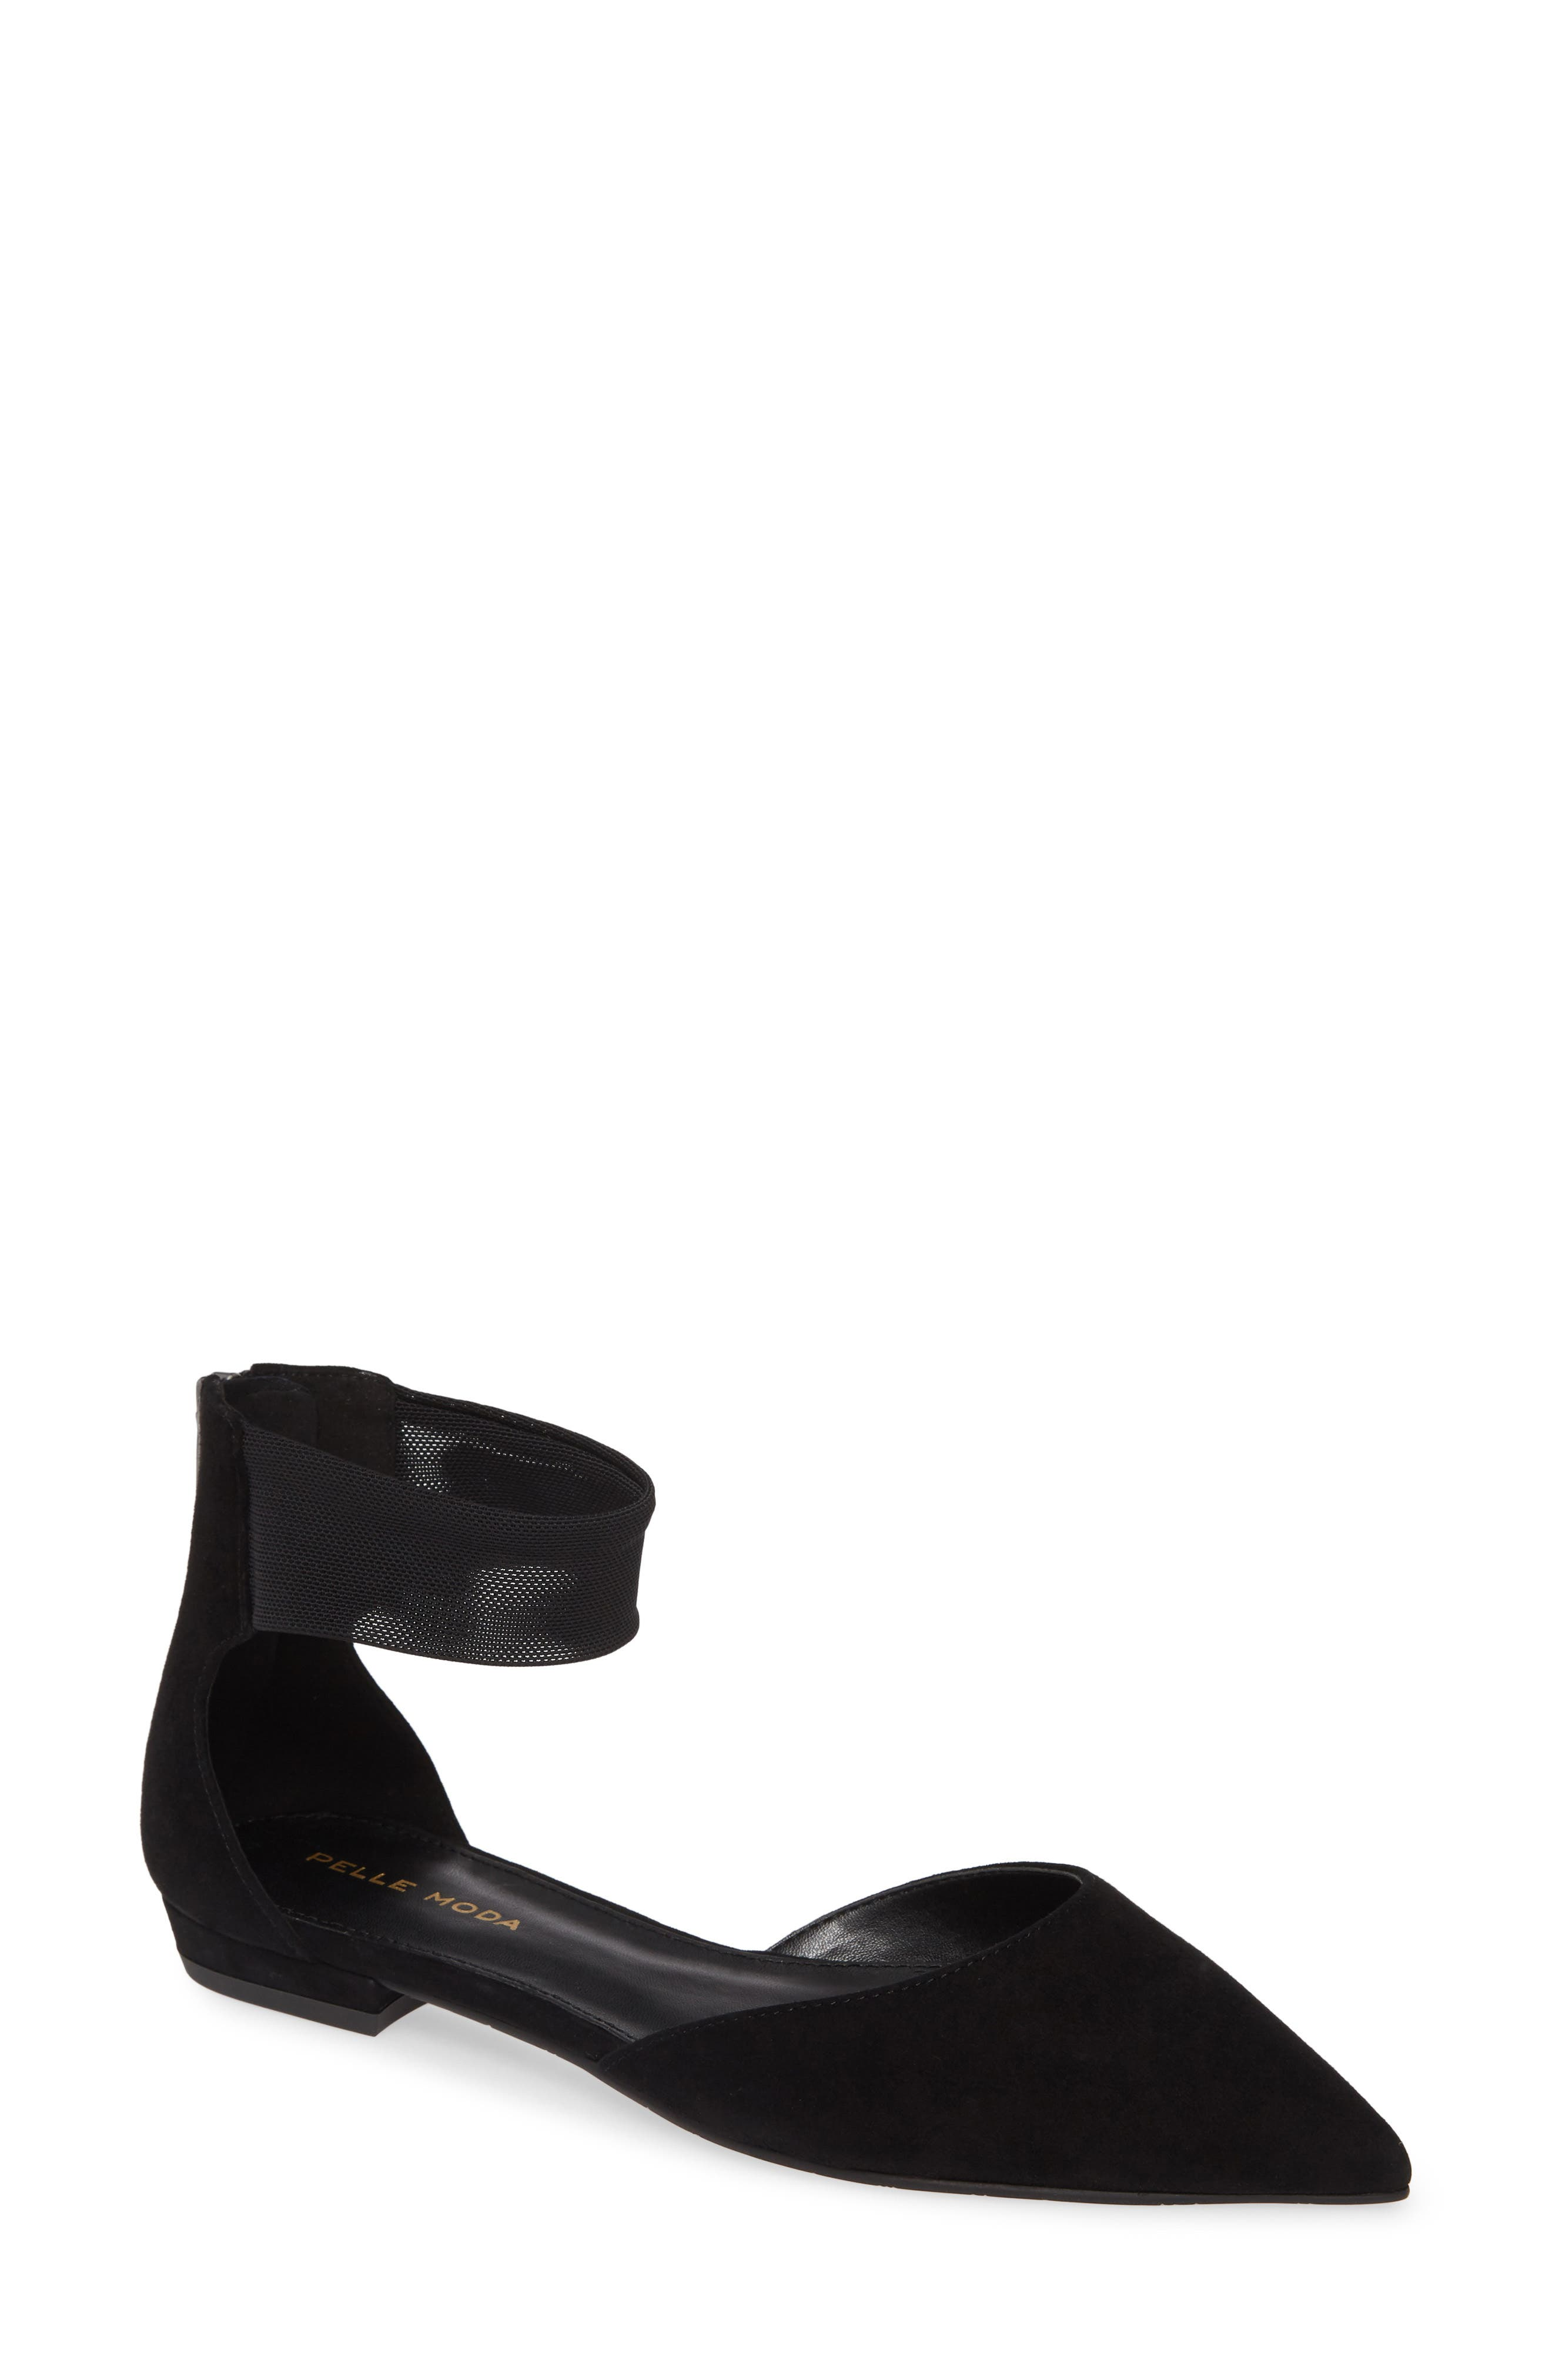 Pelle Moda Dale Ankle Strap Pointed Toe Flat- Black